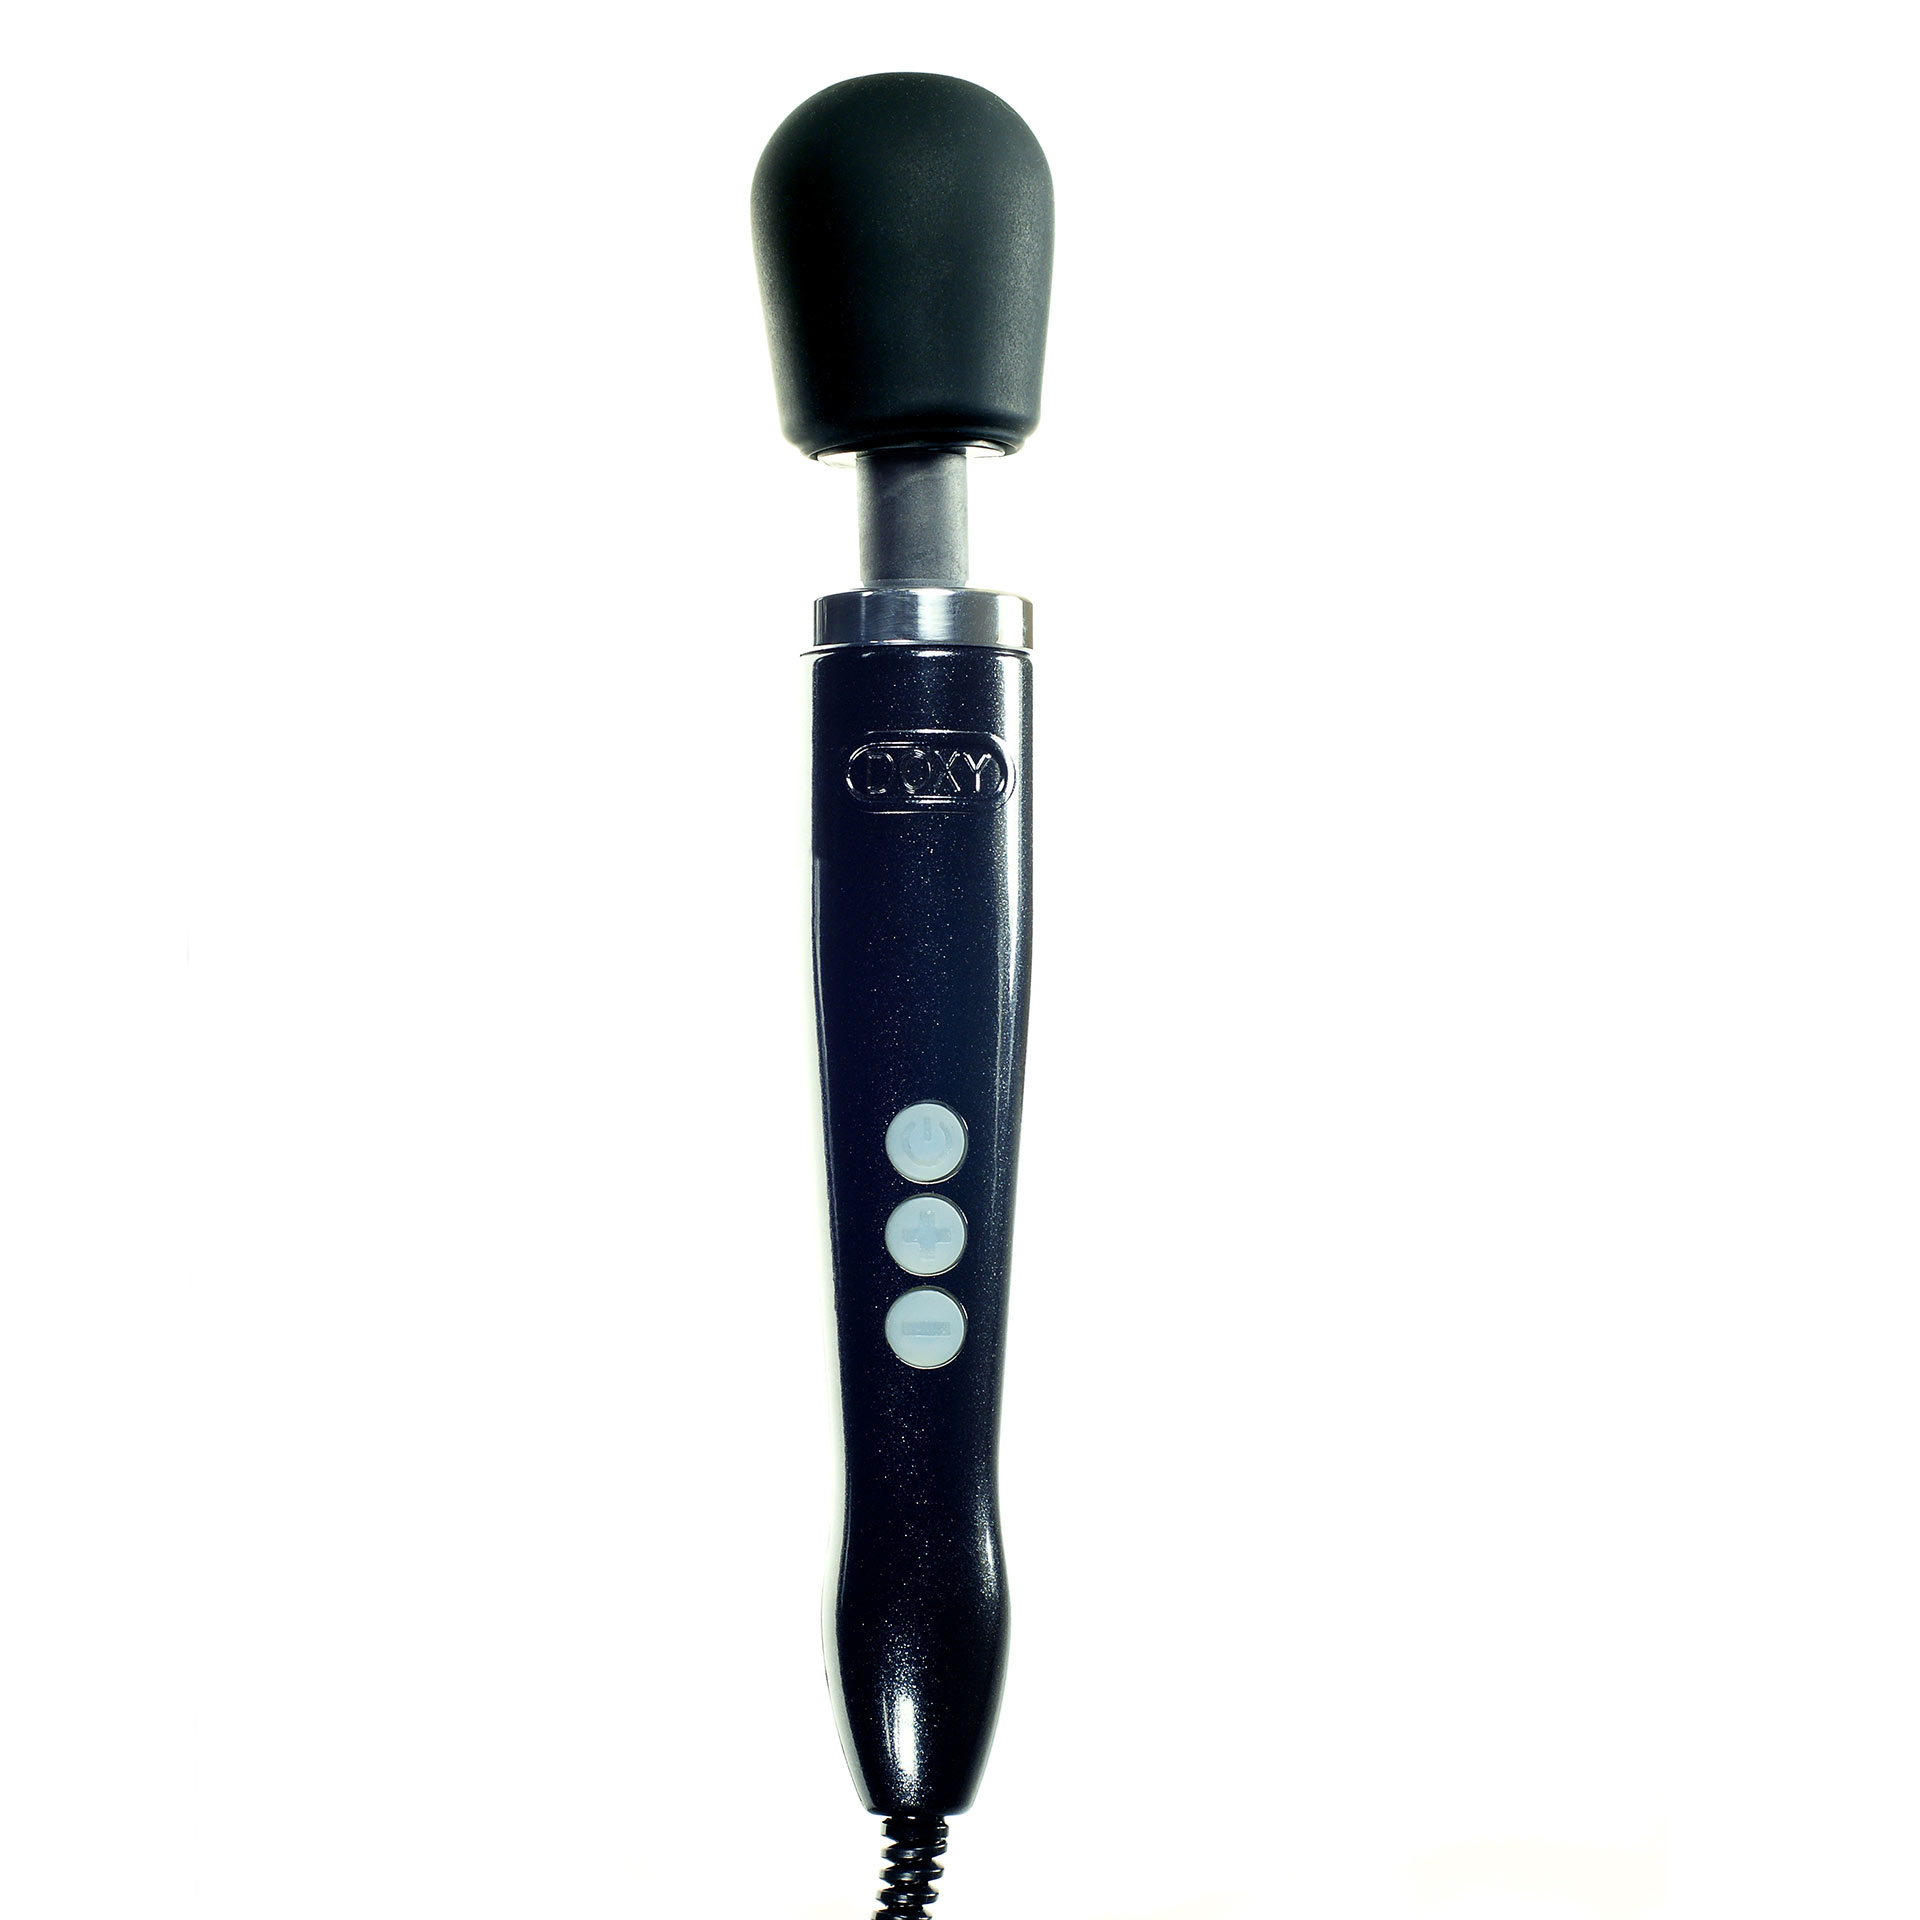 Wand Massager Die Cast Couleur